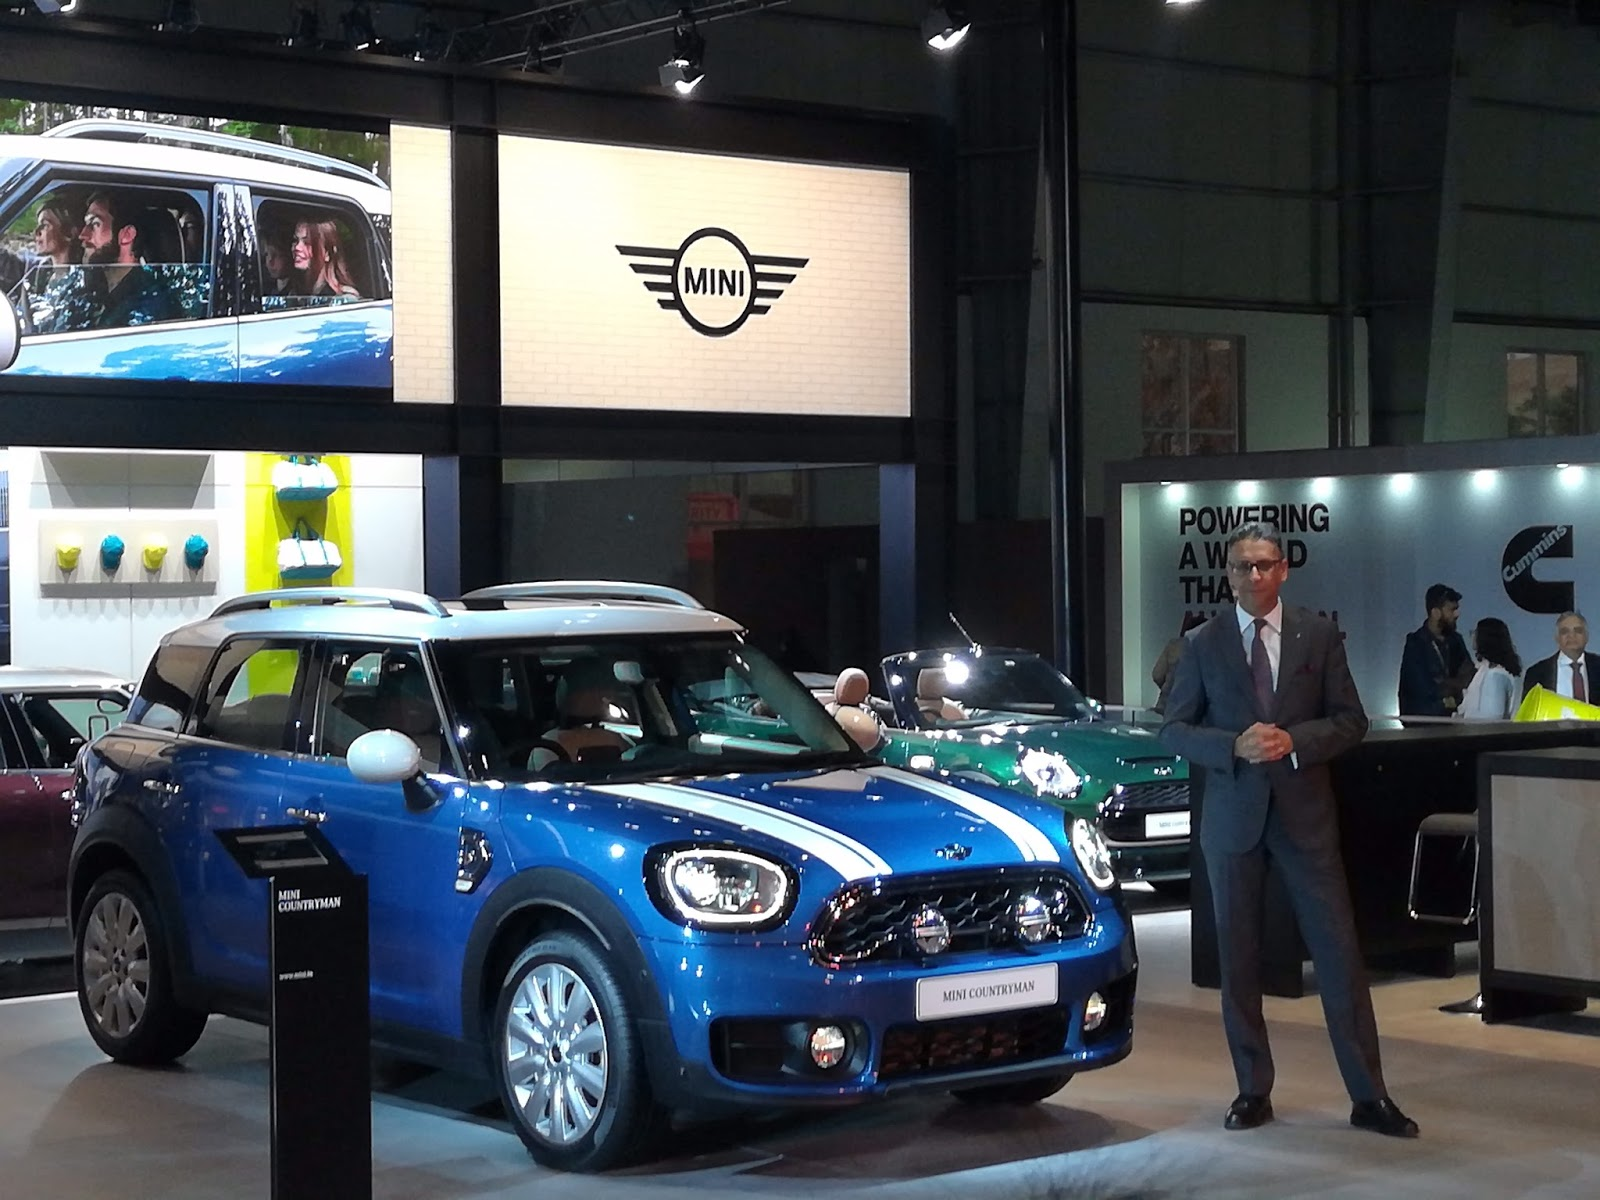 AutoExpo MINI Launches The New Made In India Countryman - Plant city car show 2018